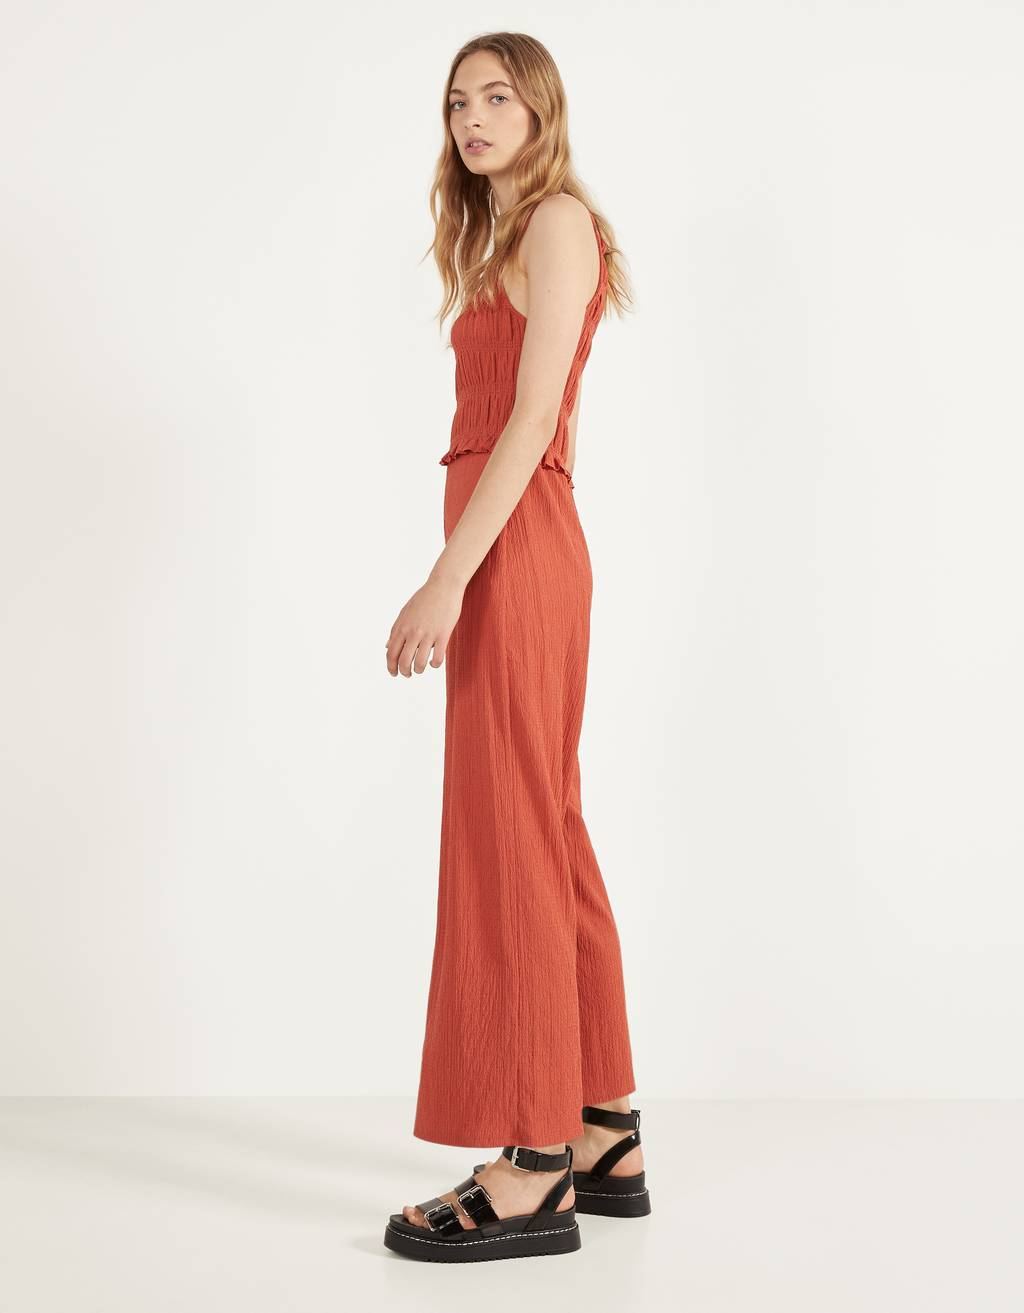 Jumpsuit featuring a shirred elastic neckline